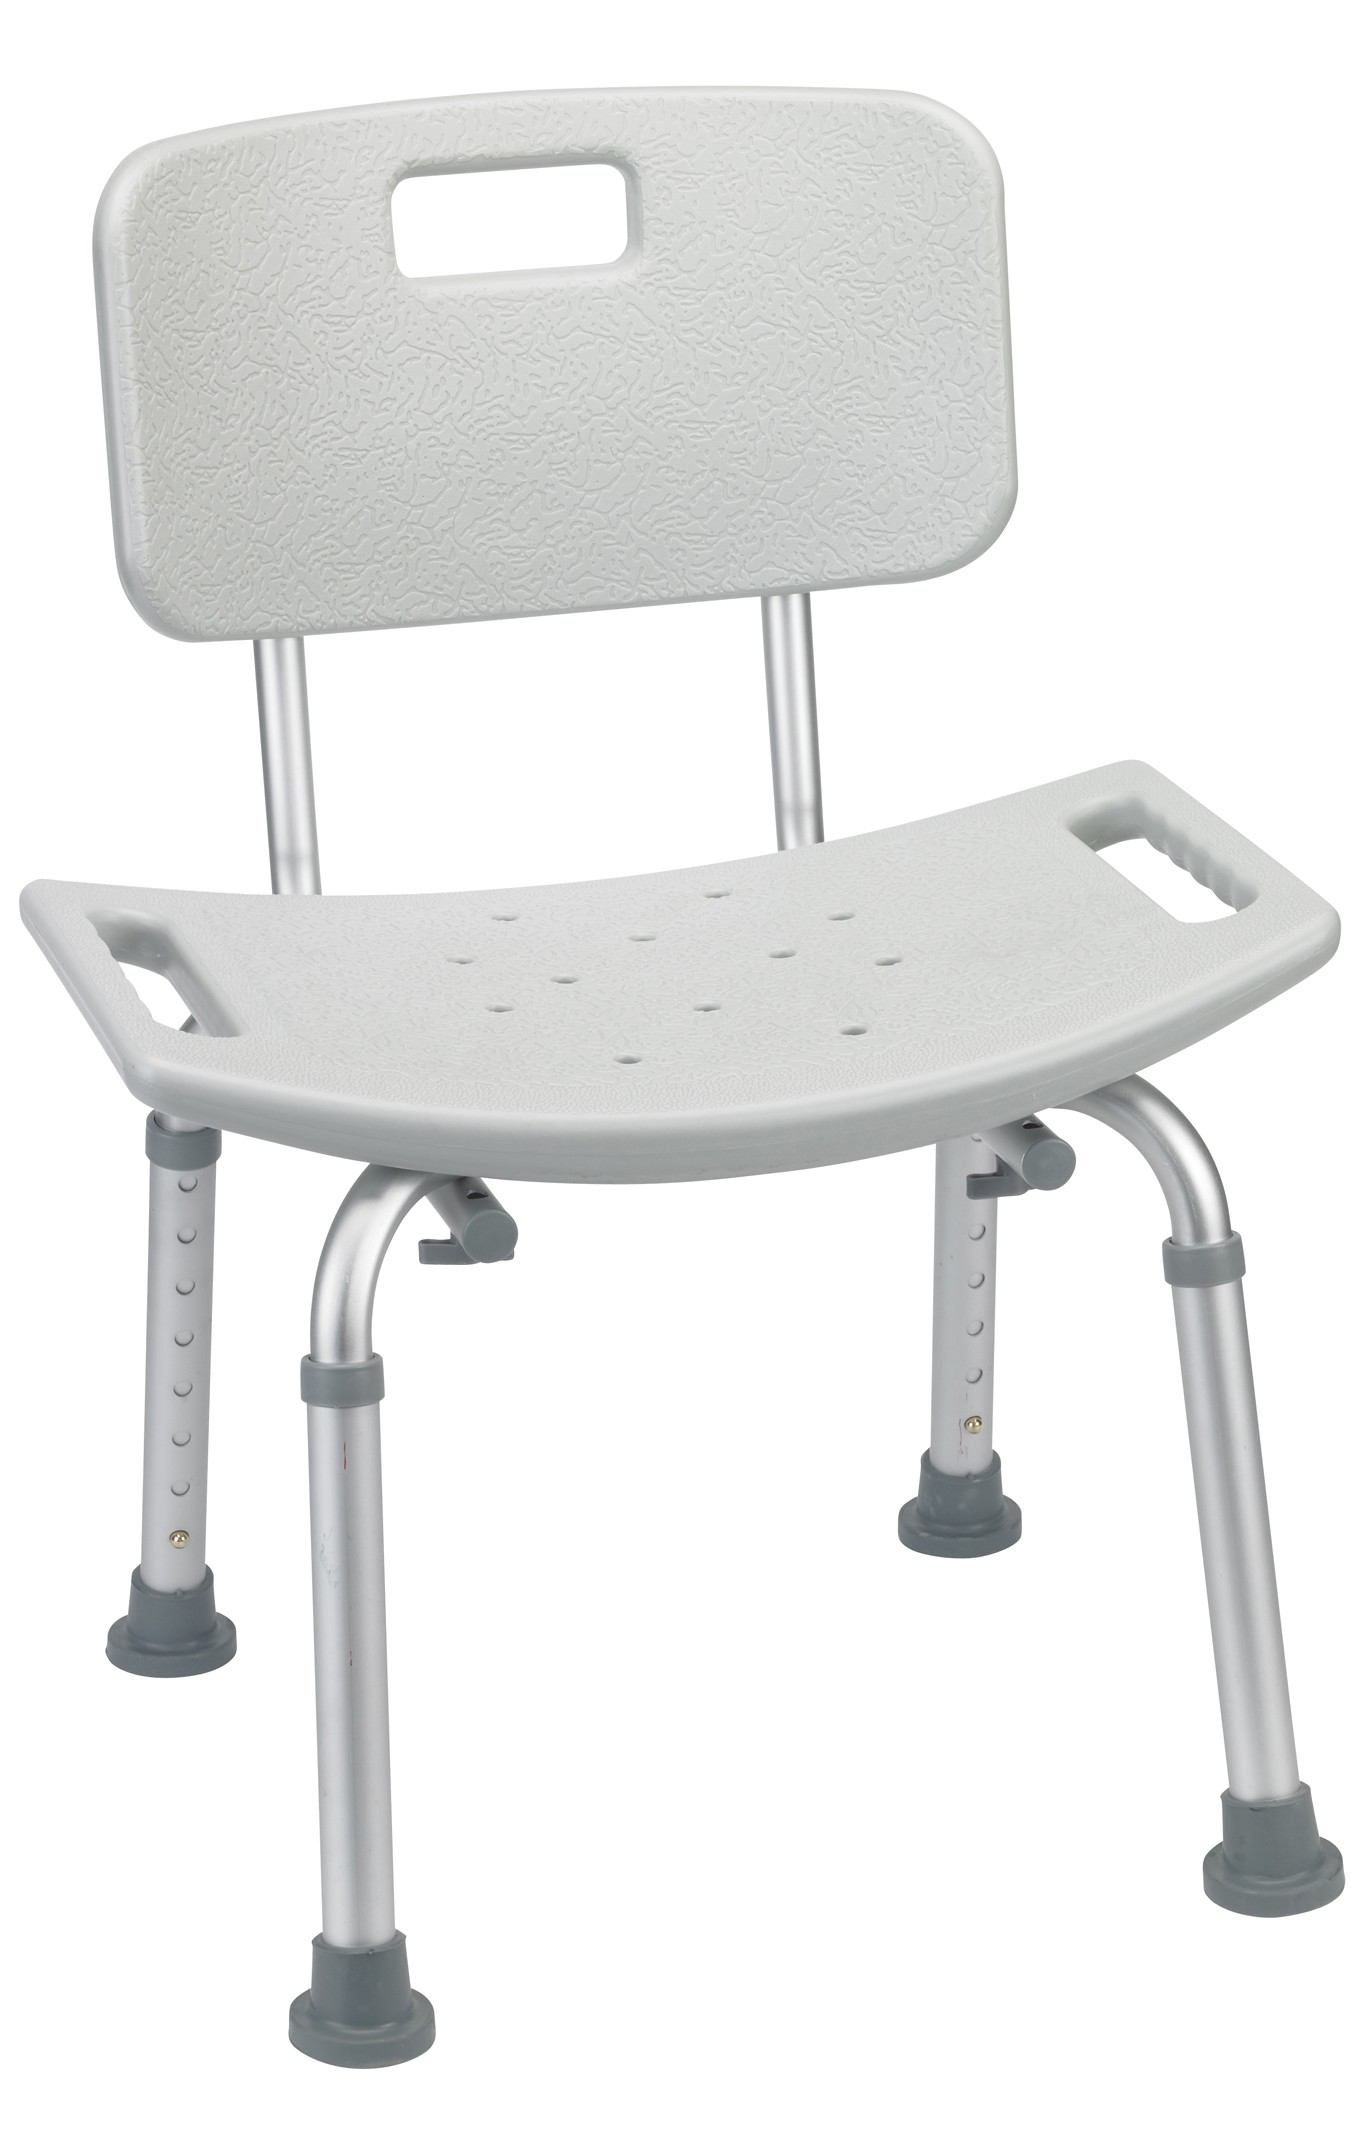 Chair For Bathtub Medical Shower Chairs Medical Equipment